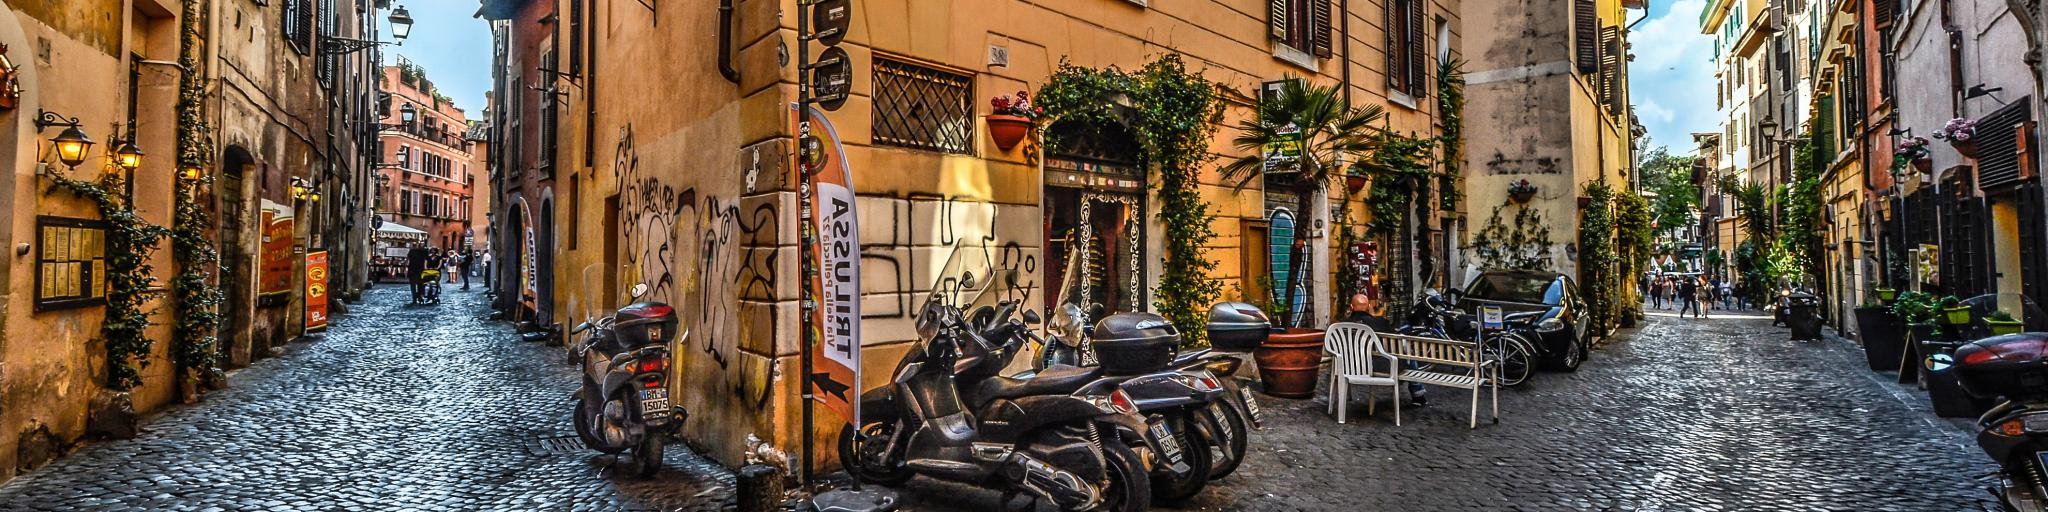 Two streets meeting in the area of Trastevere, Rome, with a sharp, yellow building in the centre and a row of scooters in the foreground